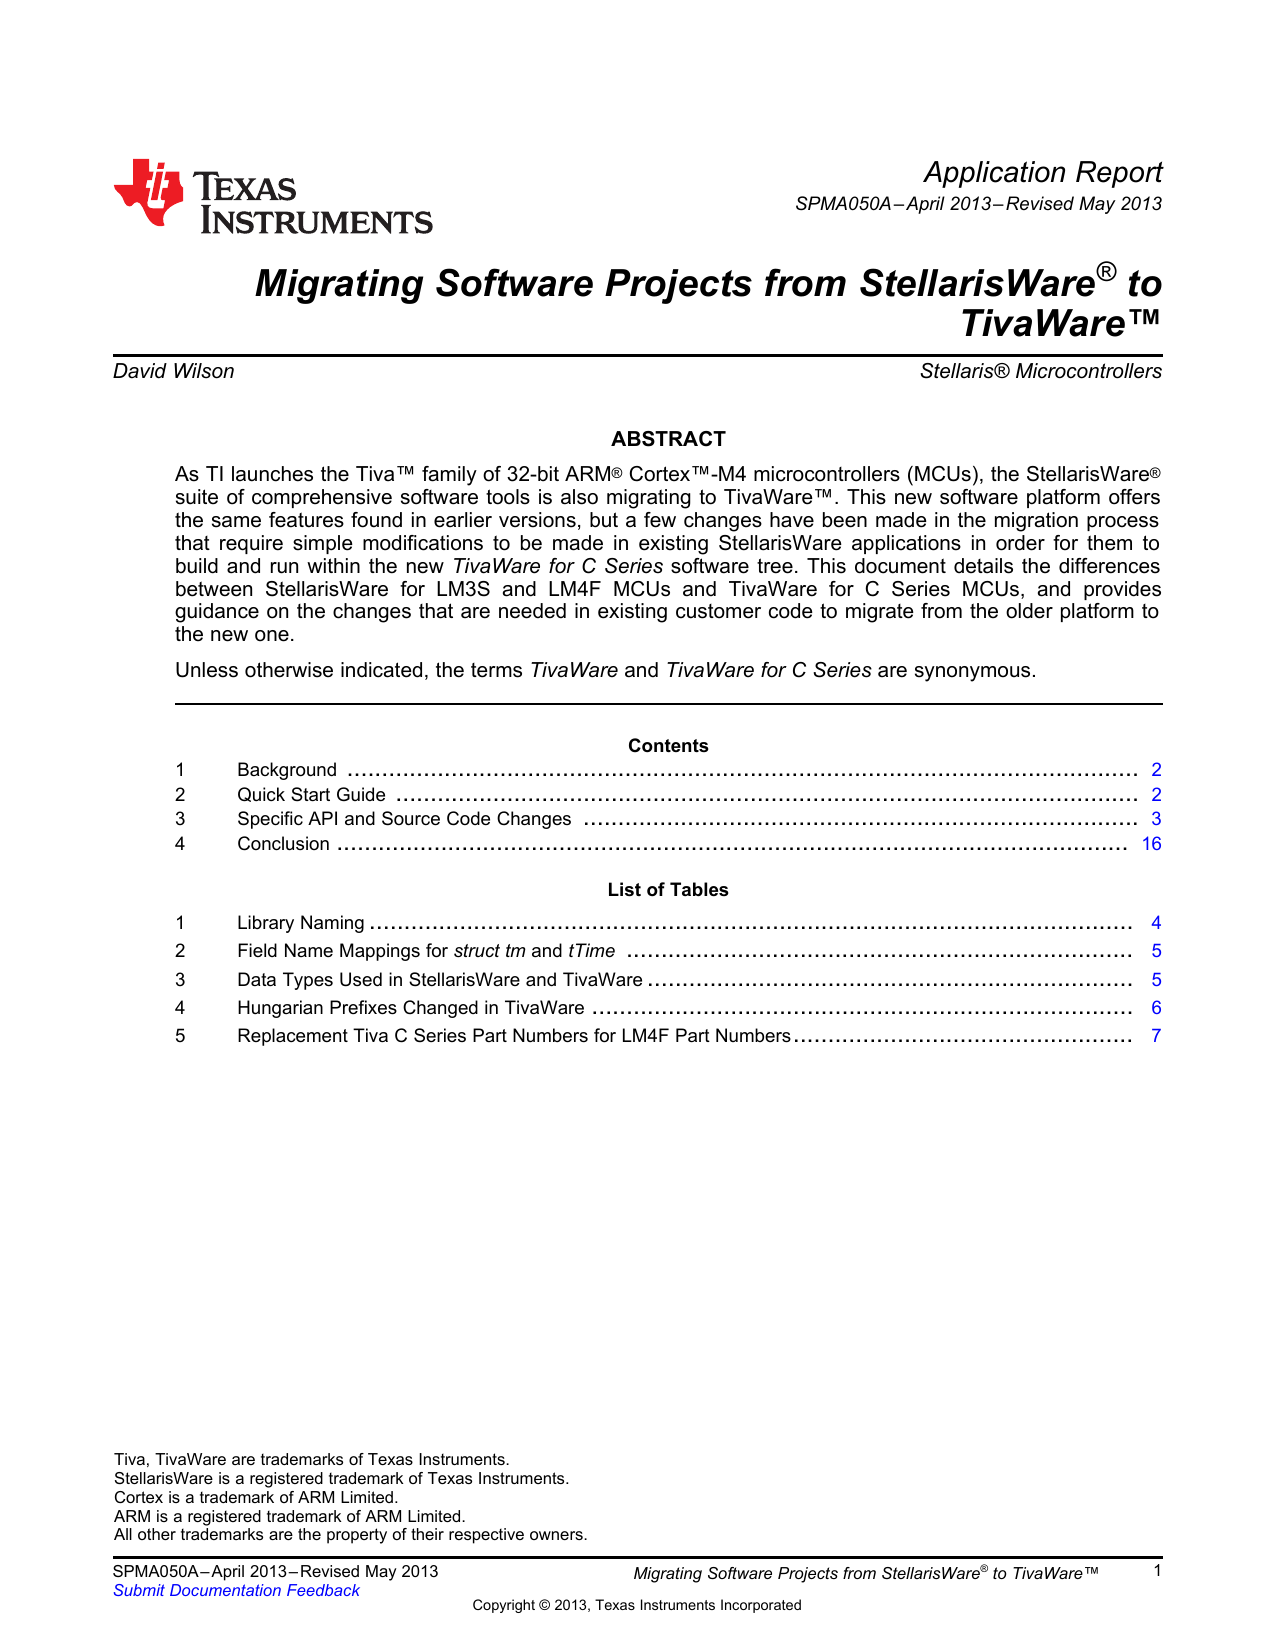 Migrating Software Projects from StellarisWare